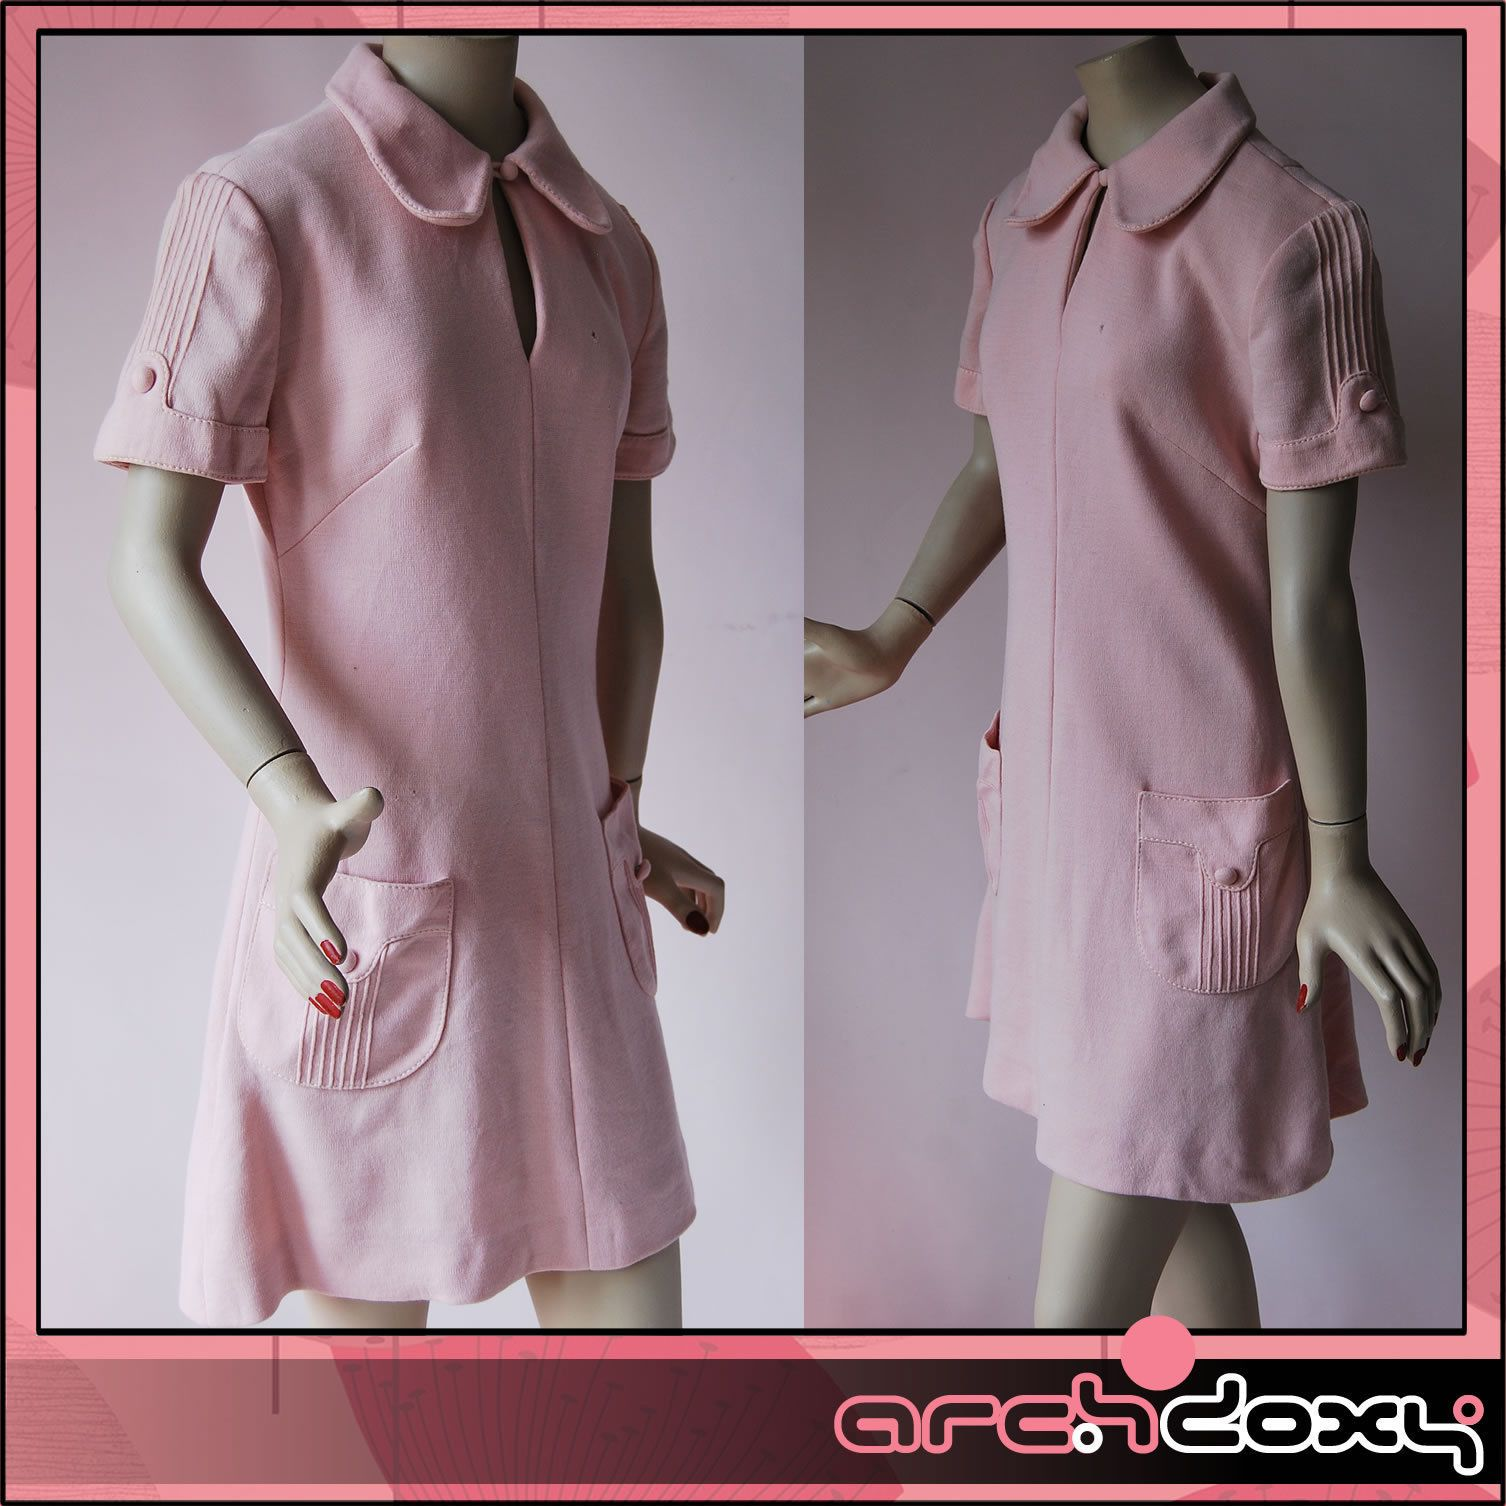 Vintage 1960s Superb Fab Baby Pink Wool Penny Collar MOD Scooter Mini Dress #vintagedress  http://www.ebay.co.uk/itm/Vintage-1960s-Superb-Fab-Baby-Pink-Wool-Penny-Collar-MOD-Scooter-Mini-Dress-UK12-/371662978778